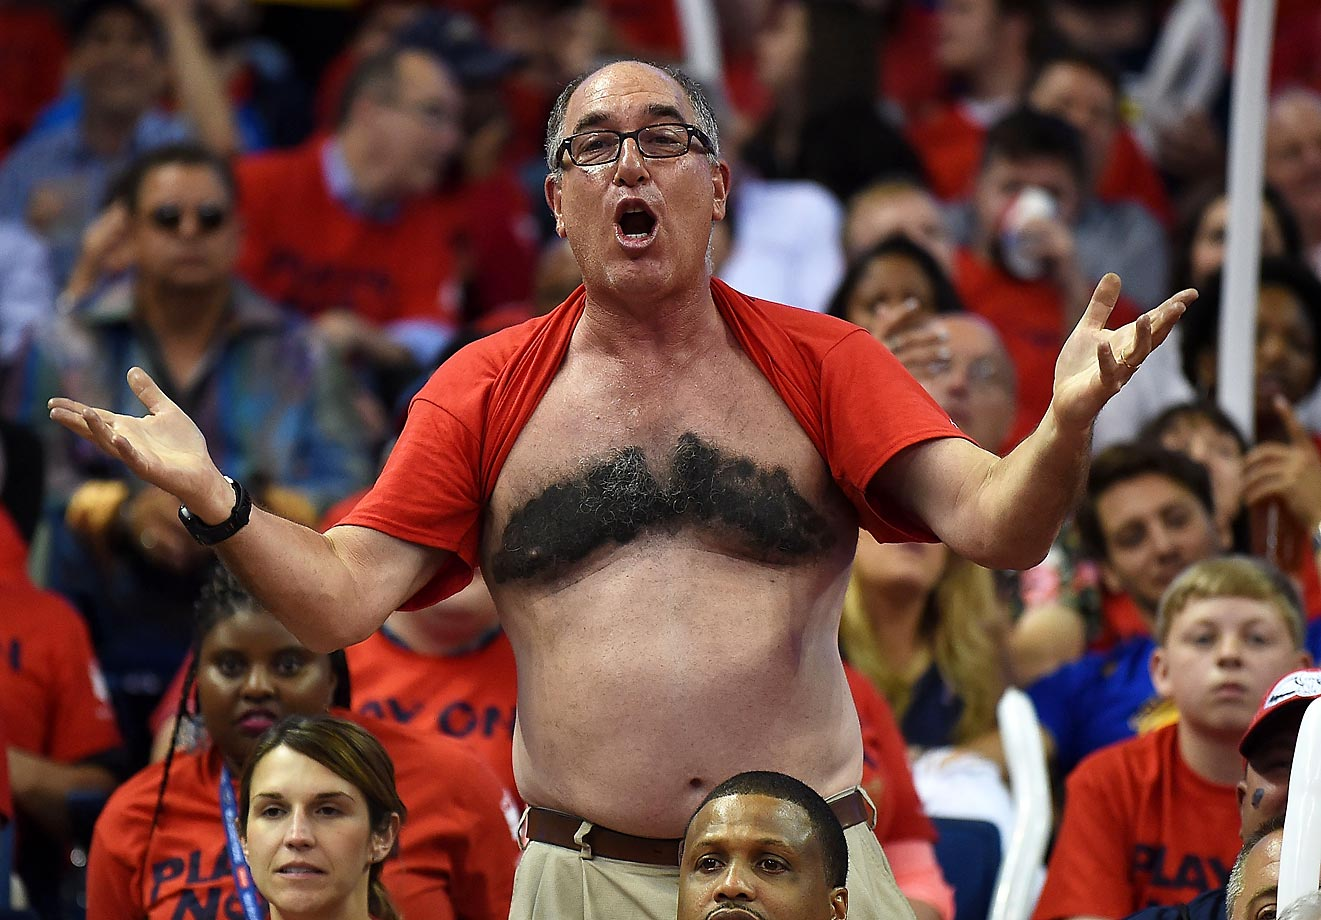 A New Orleans Pelicans fan cheers for his team in a game against the Golden State Warriors.